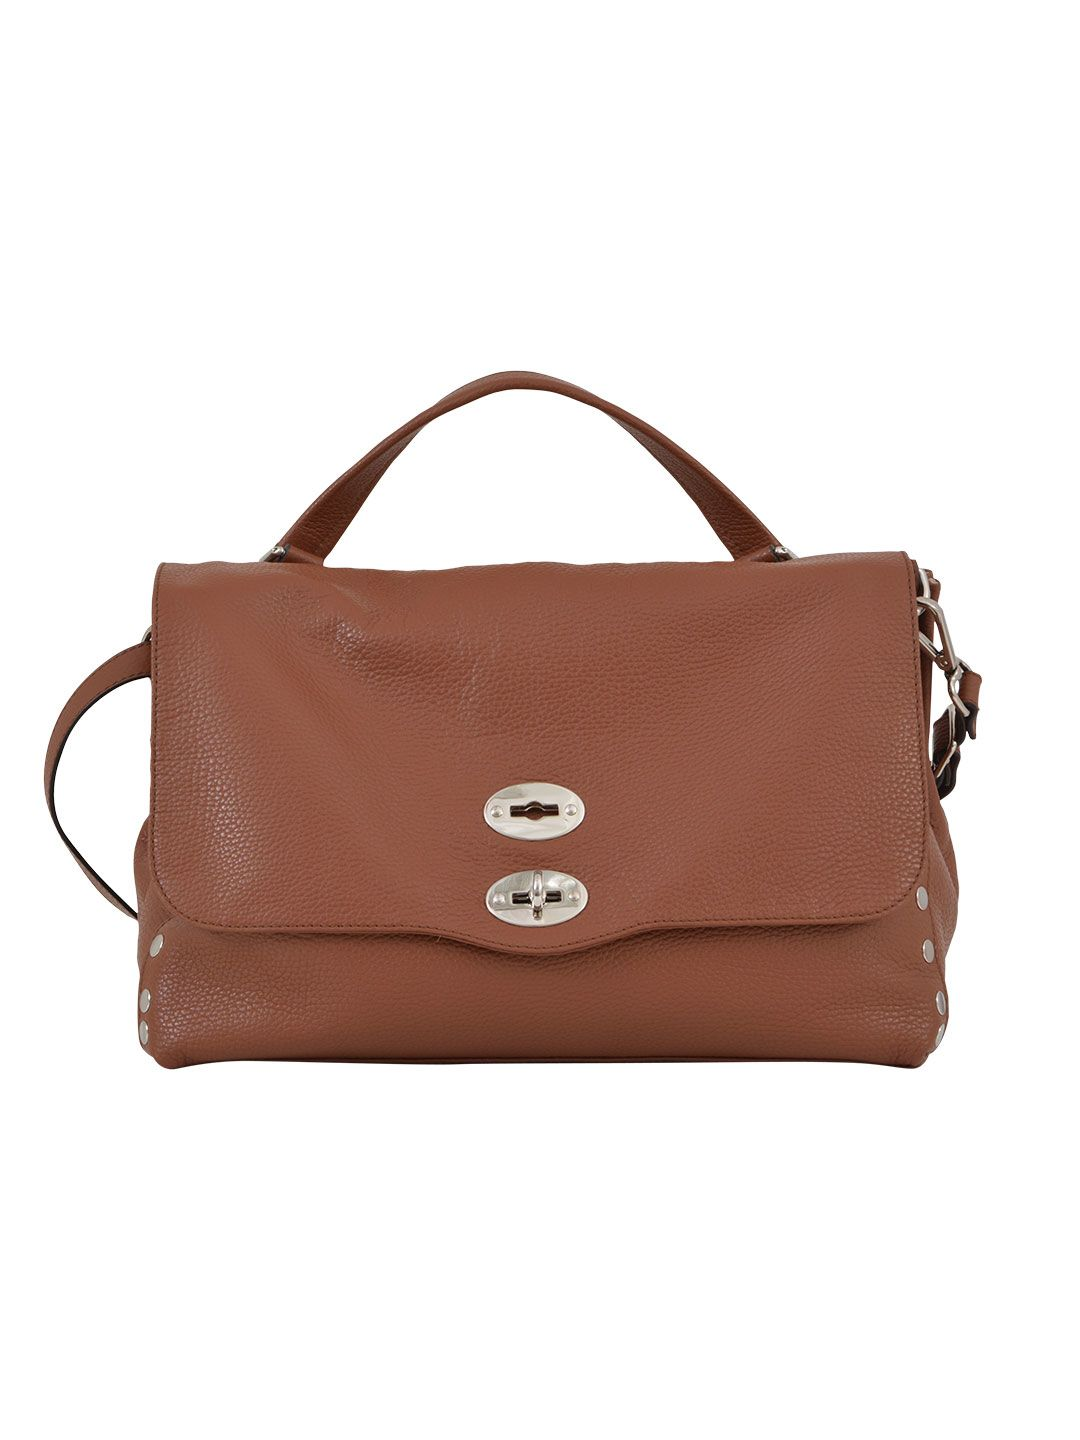 Zanellato Medium Postina Handbag